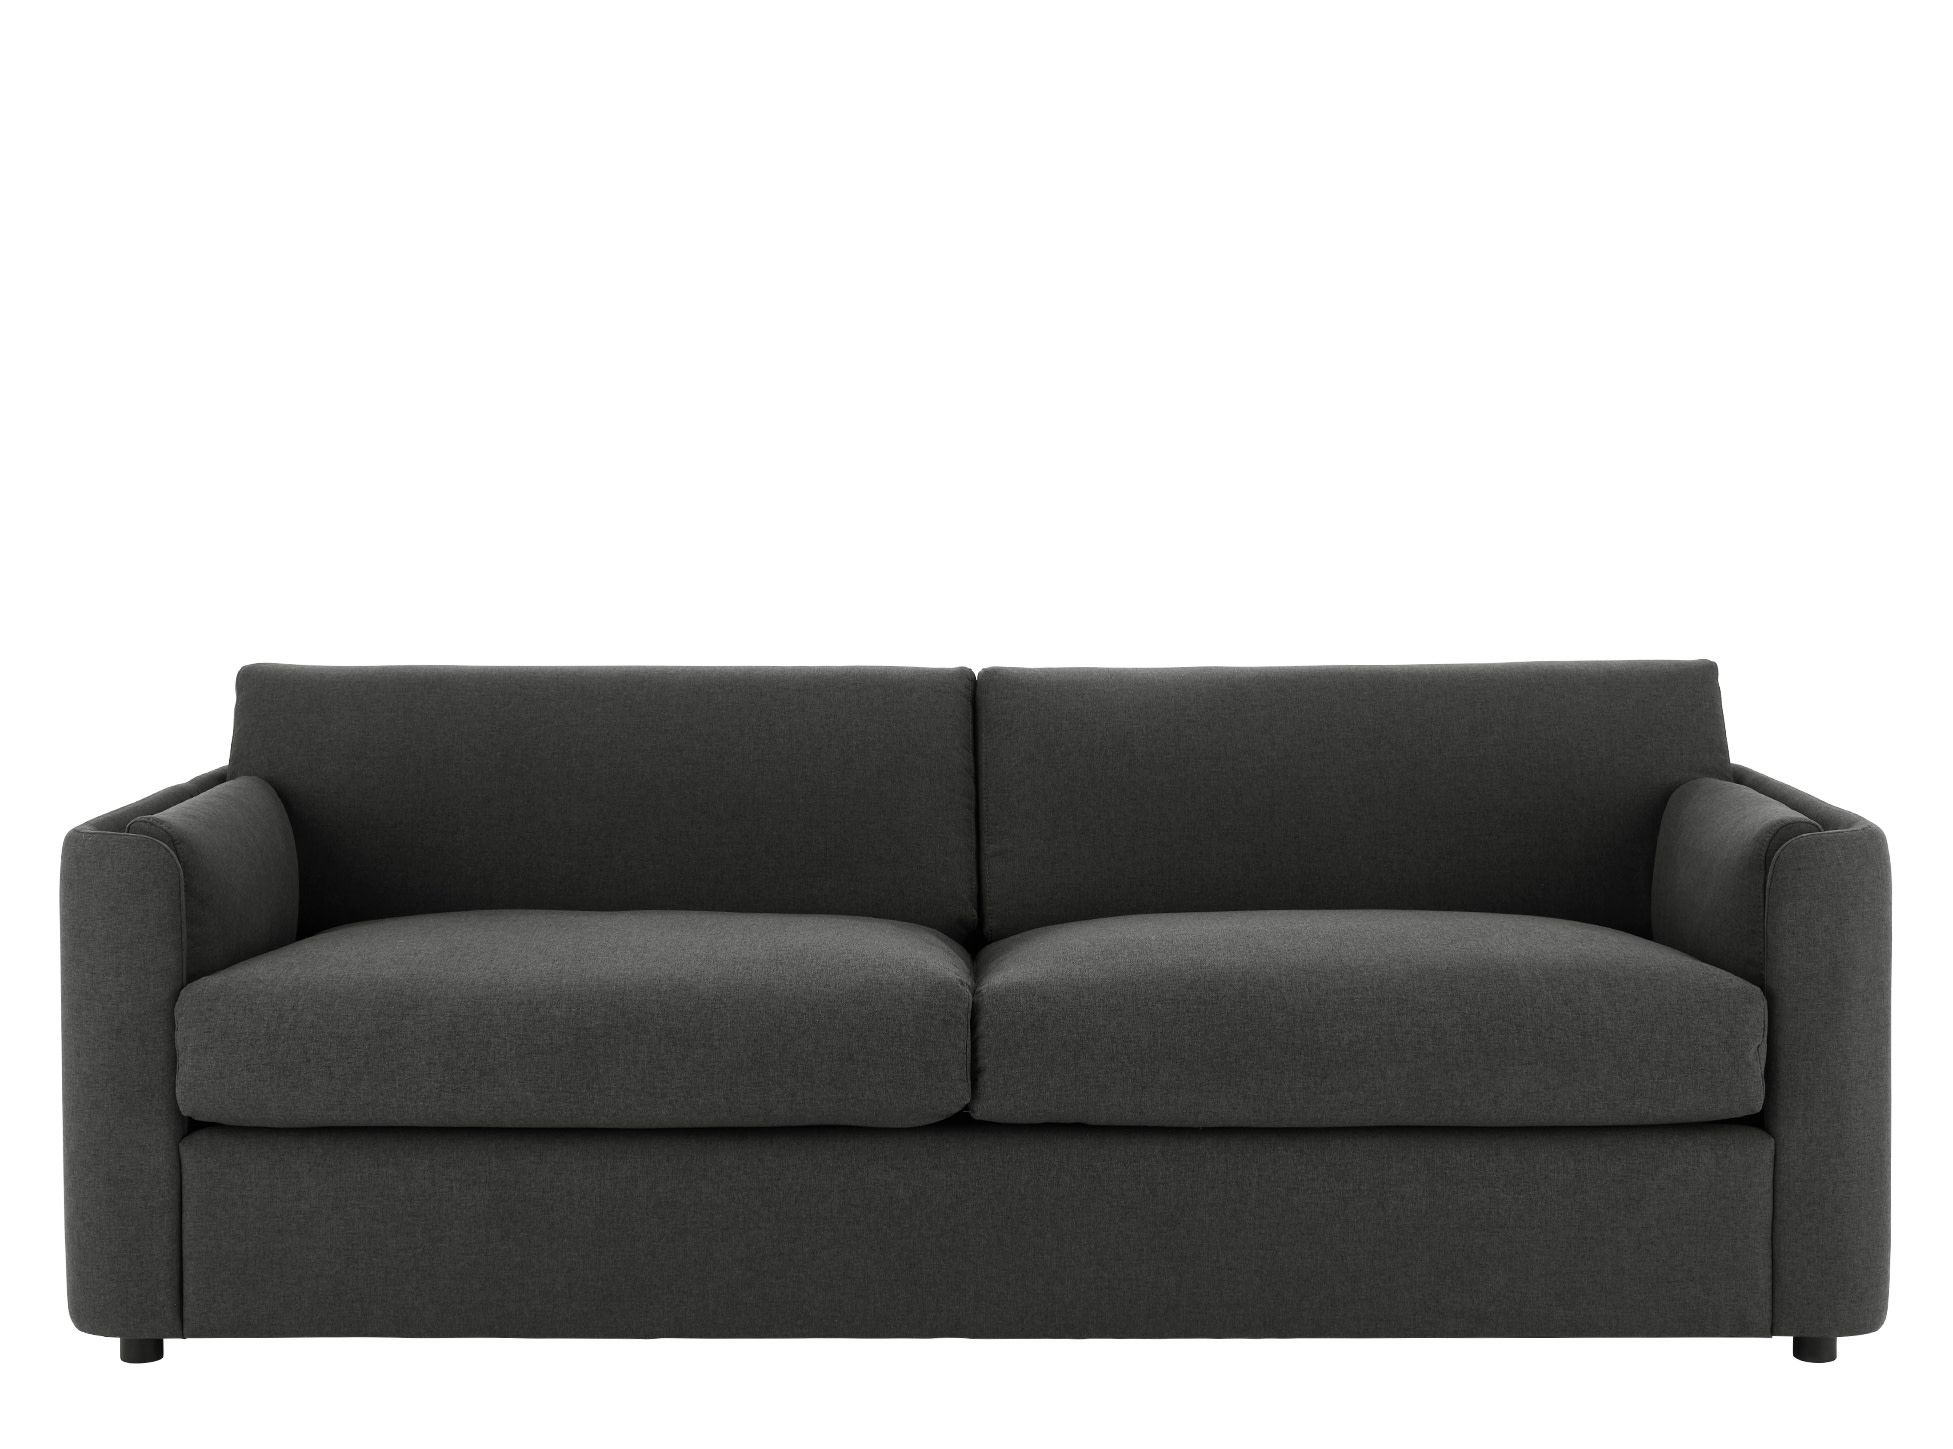 Baen 3 Seater Sofa Sterling Grey from Made Express delivery